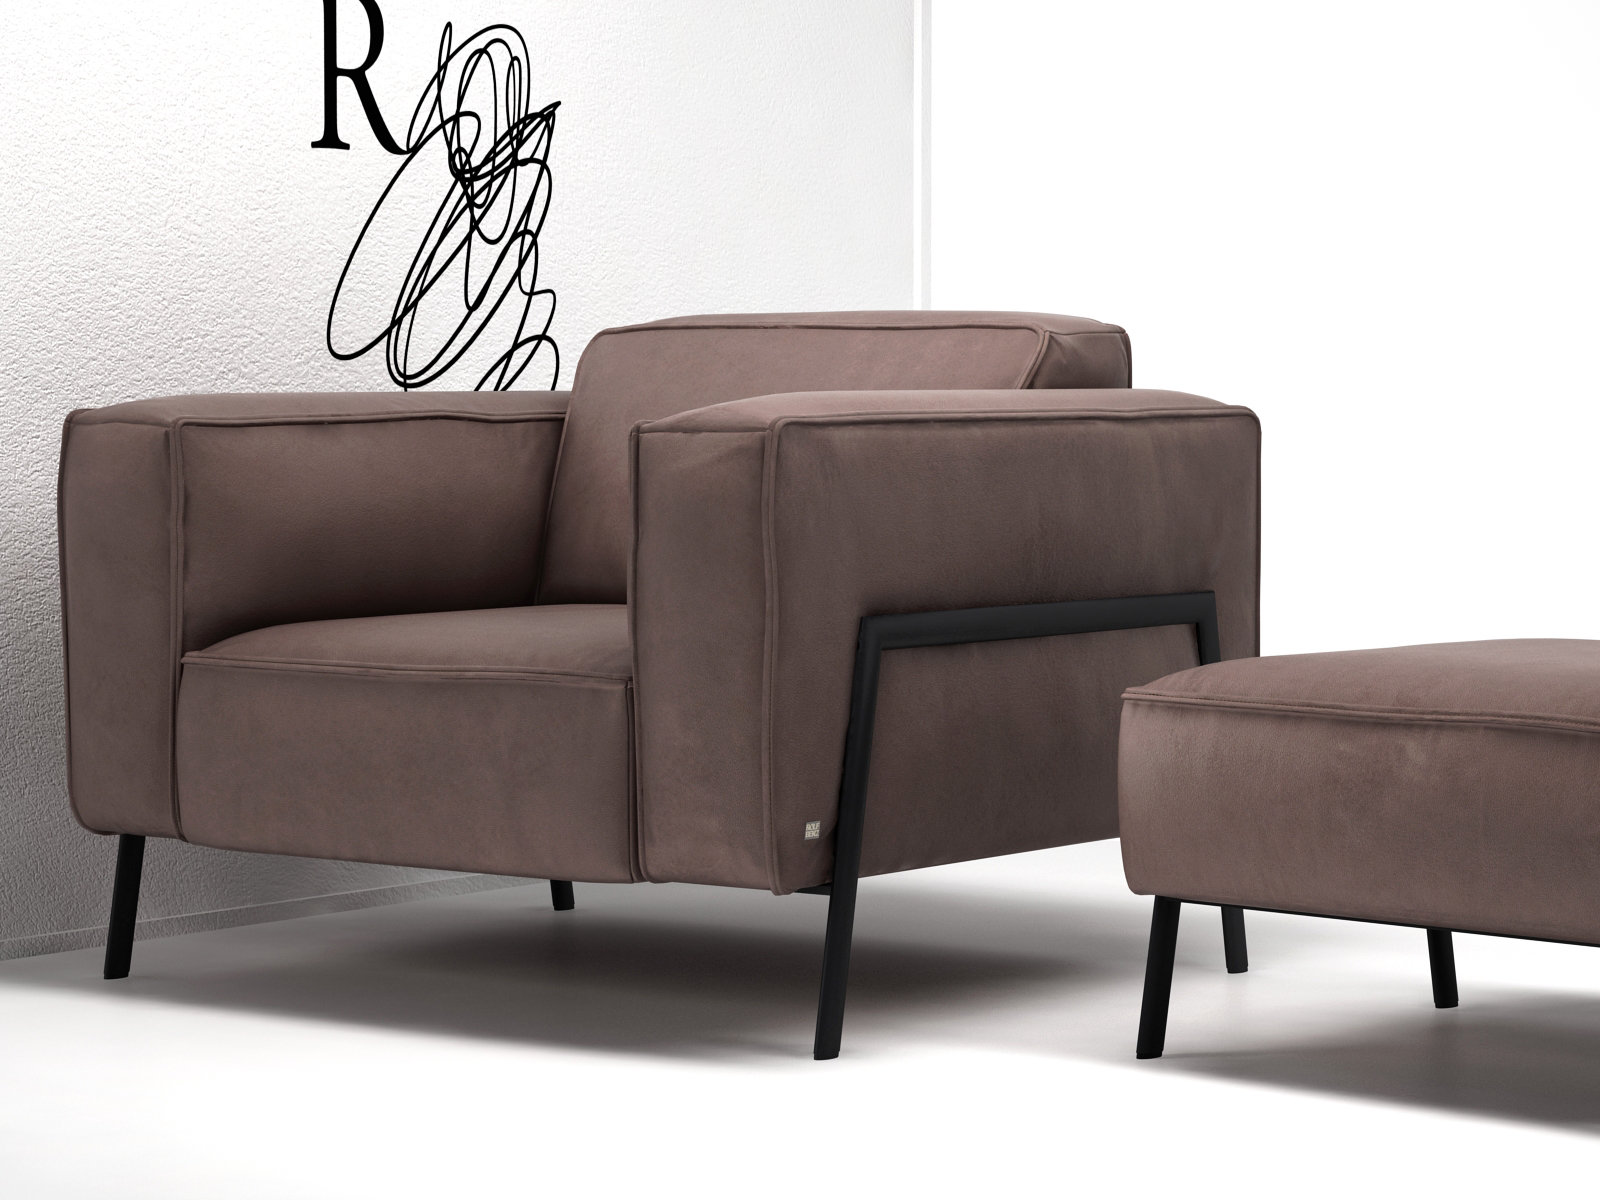 bacio armchair 3d model rolf benz. Black Bedroom Furniture Sets. Home Design Ideas